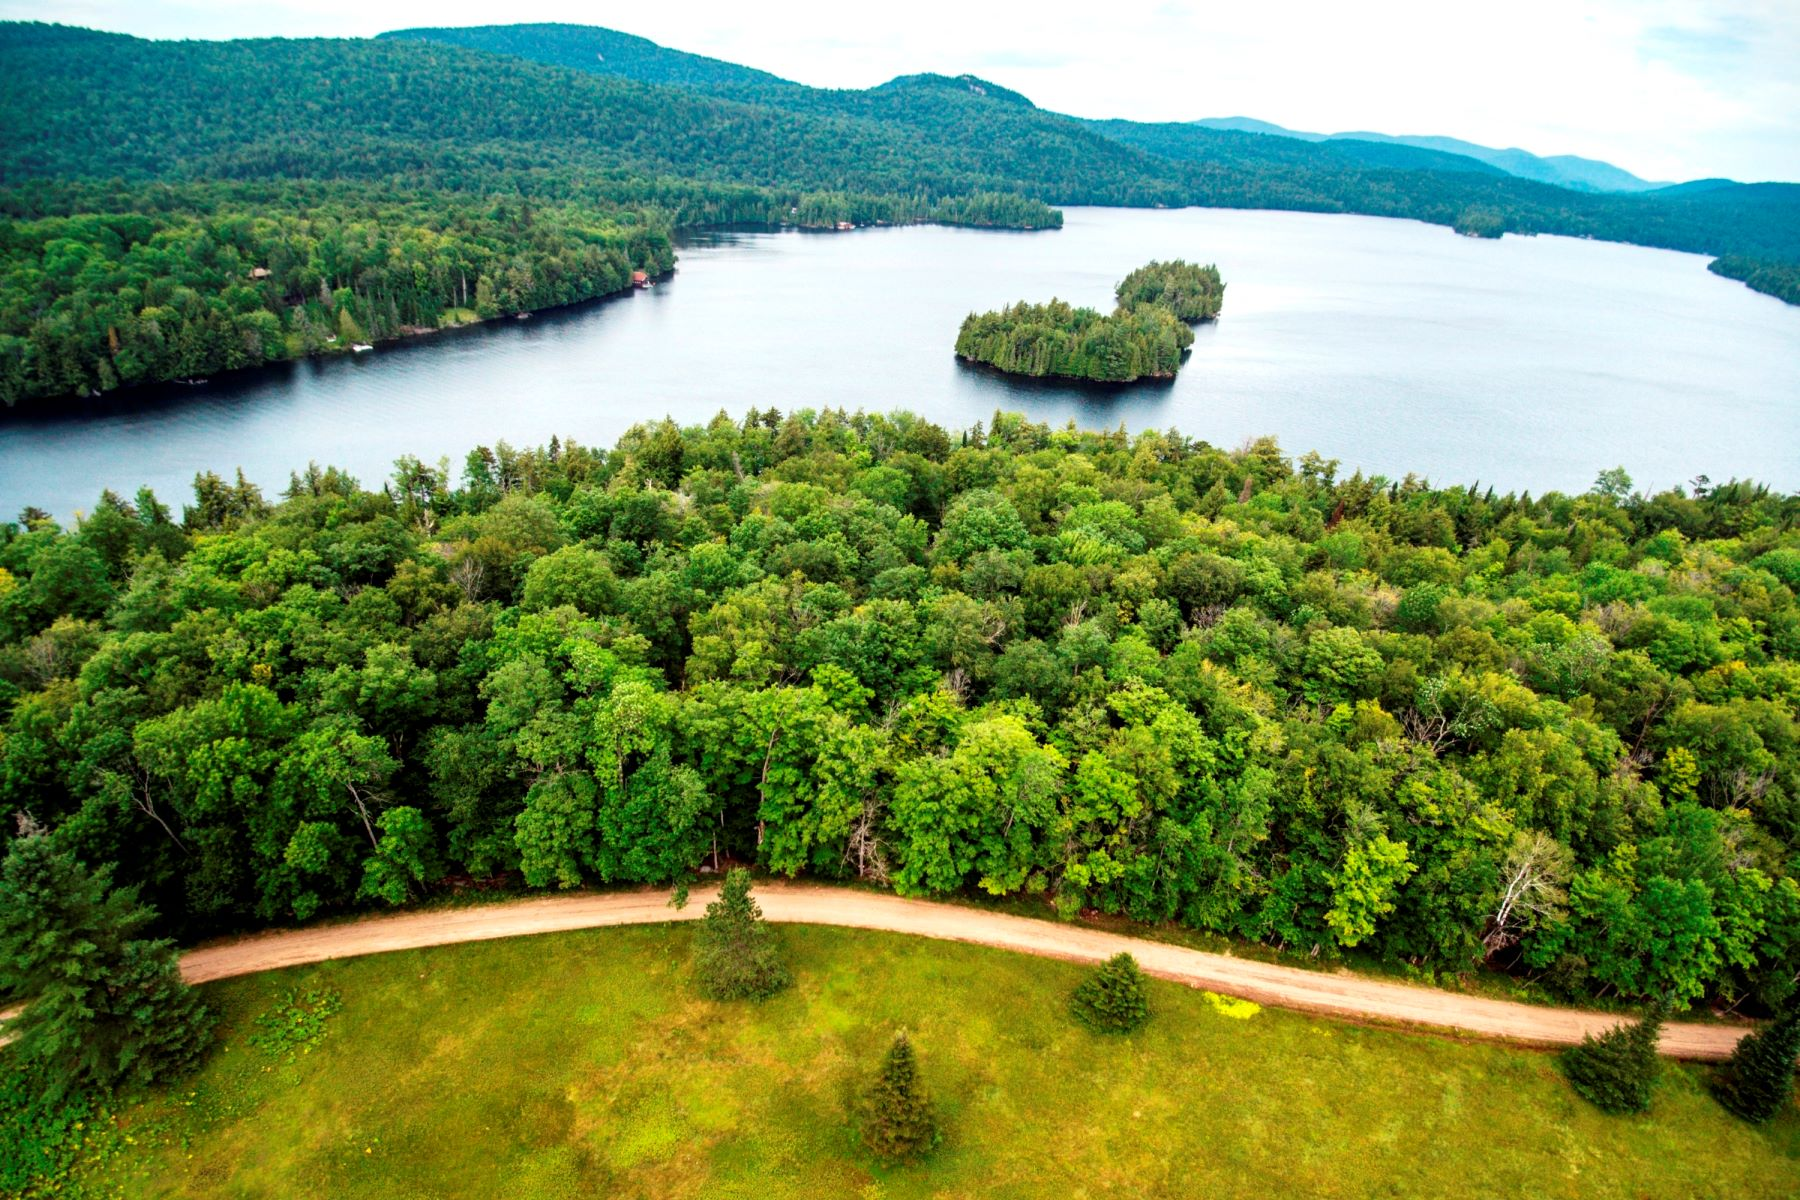 Terreno por un Venta en 6+ acre building lot on coveted Eagle Nest Area Eagle Nest Road Blue Mountain Lake, Nueva York 12812 Estados Unidos